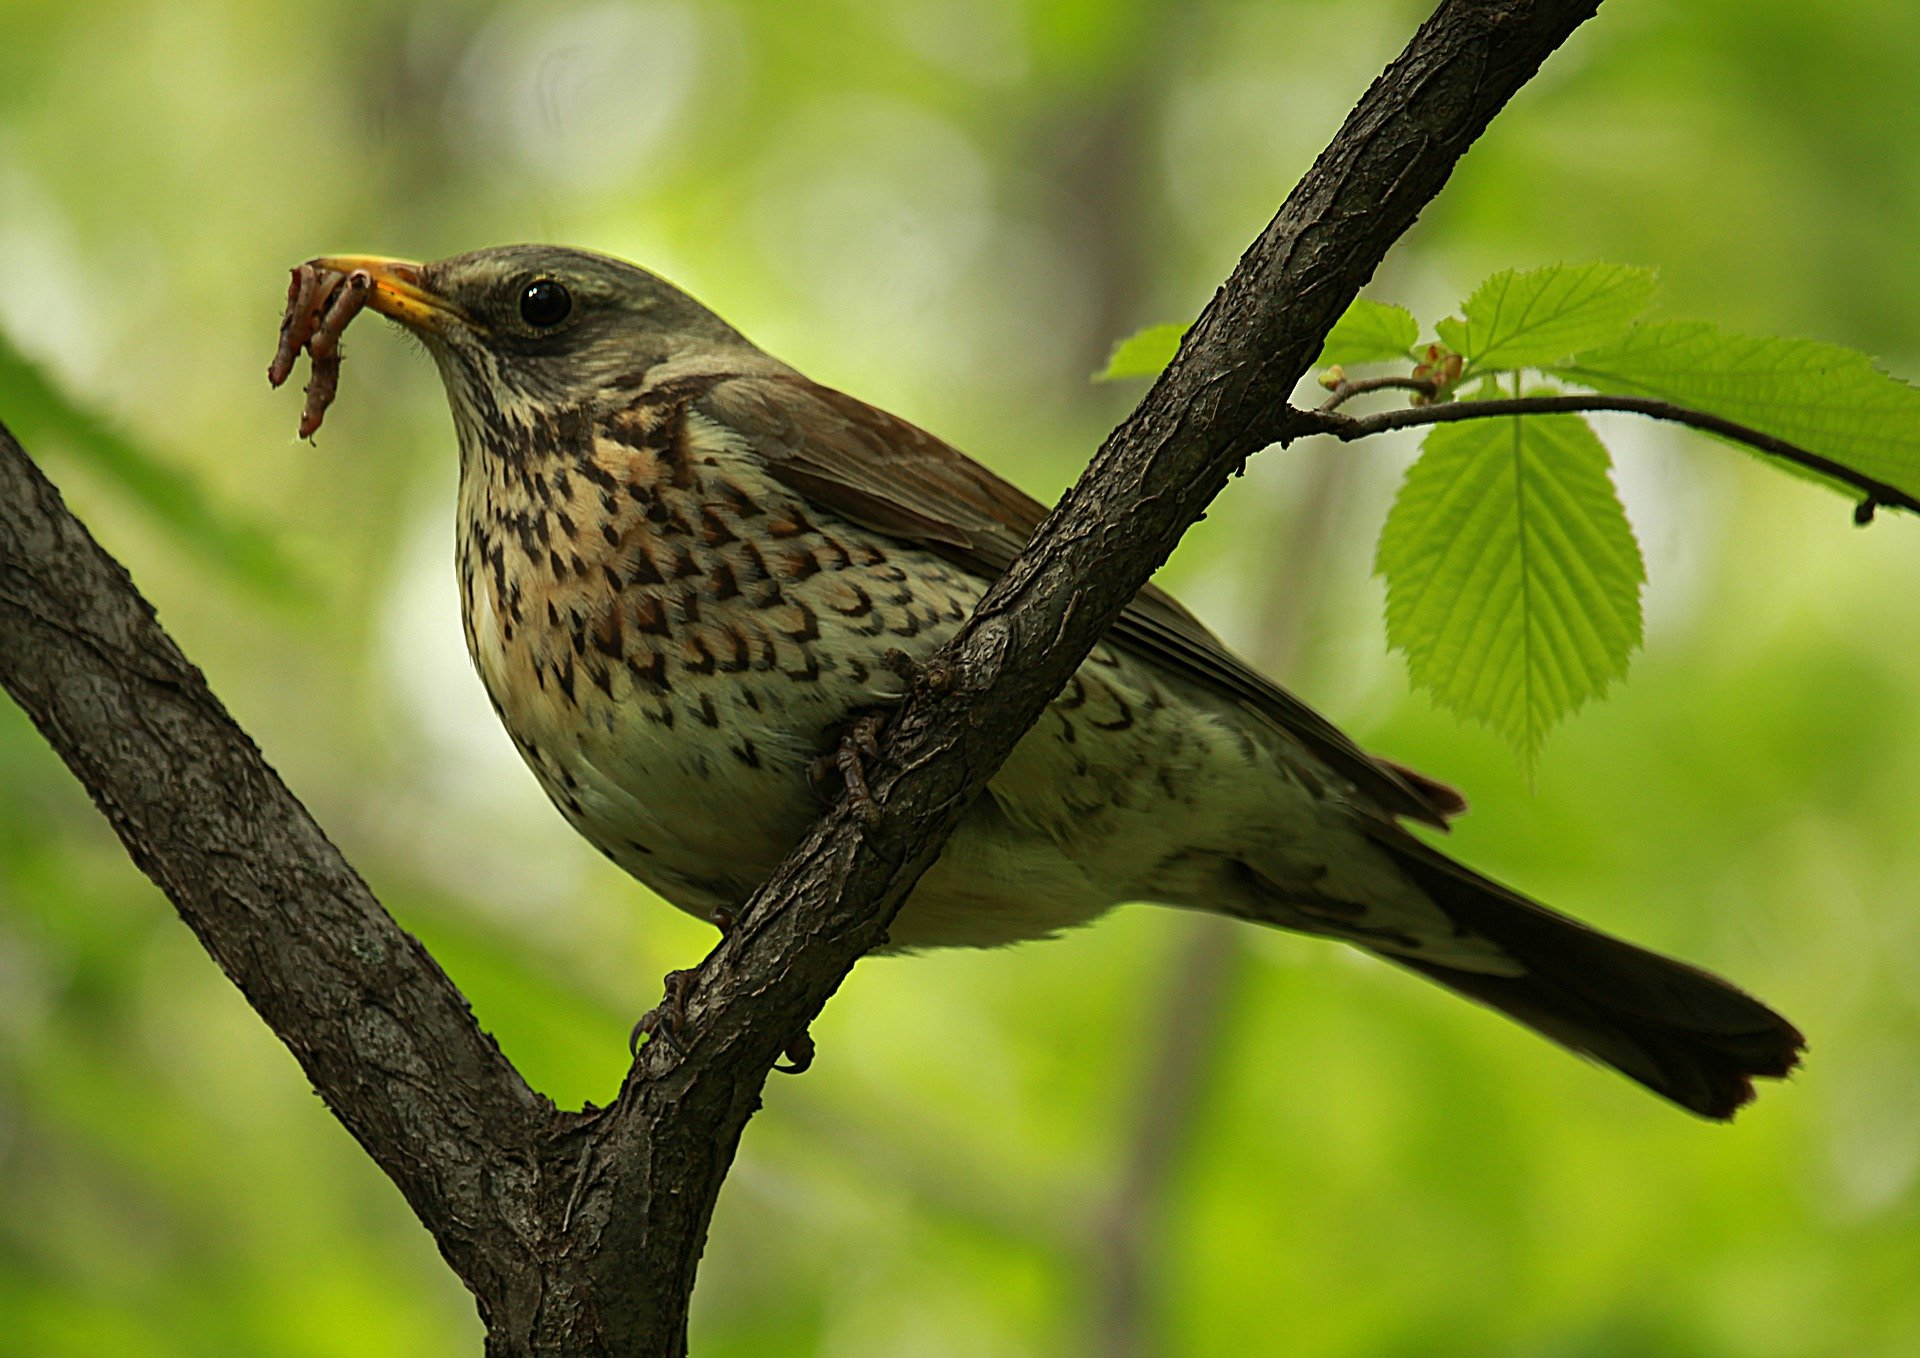 The man shared why he chose a thrush song bird to represent his wife. | Photo: Pixabay/Ирина Ирина